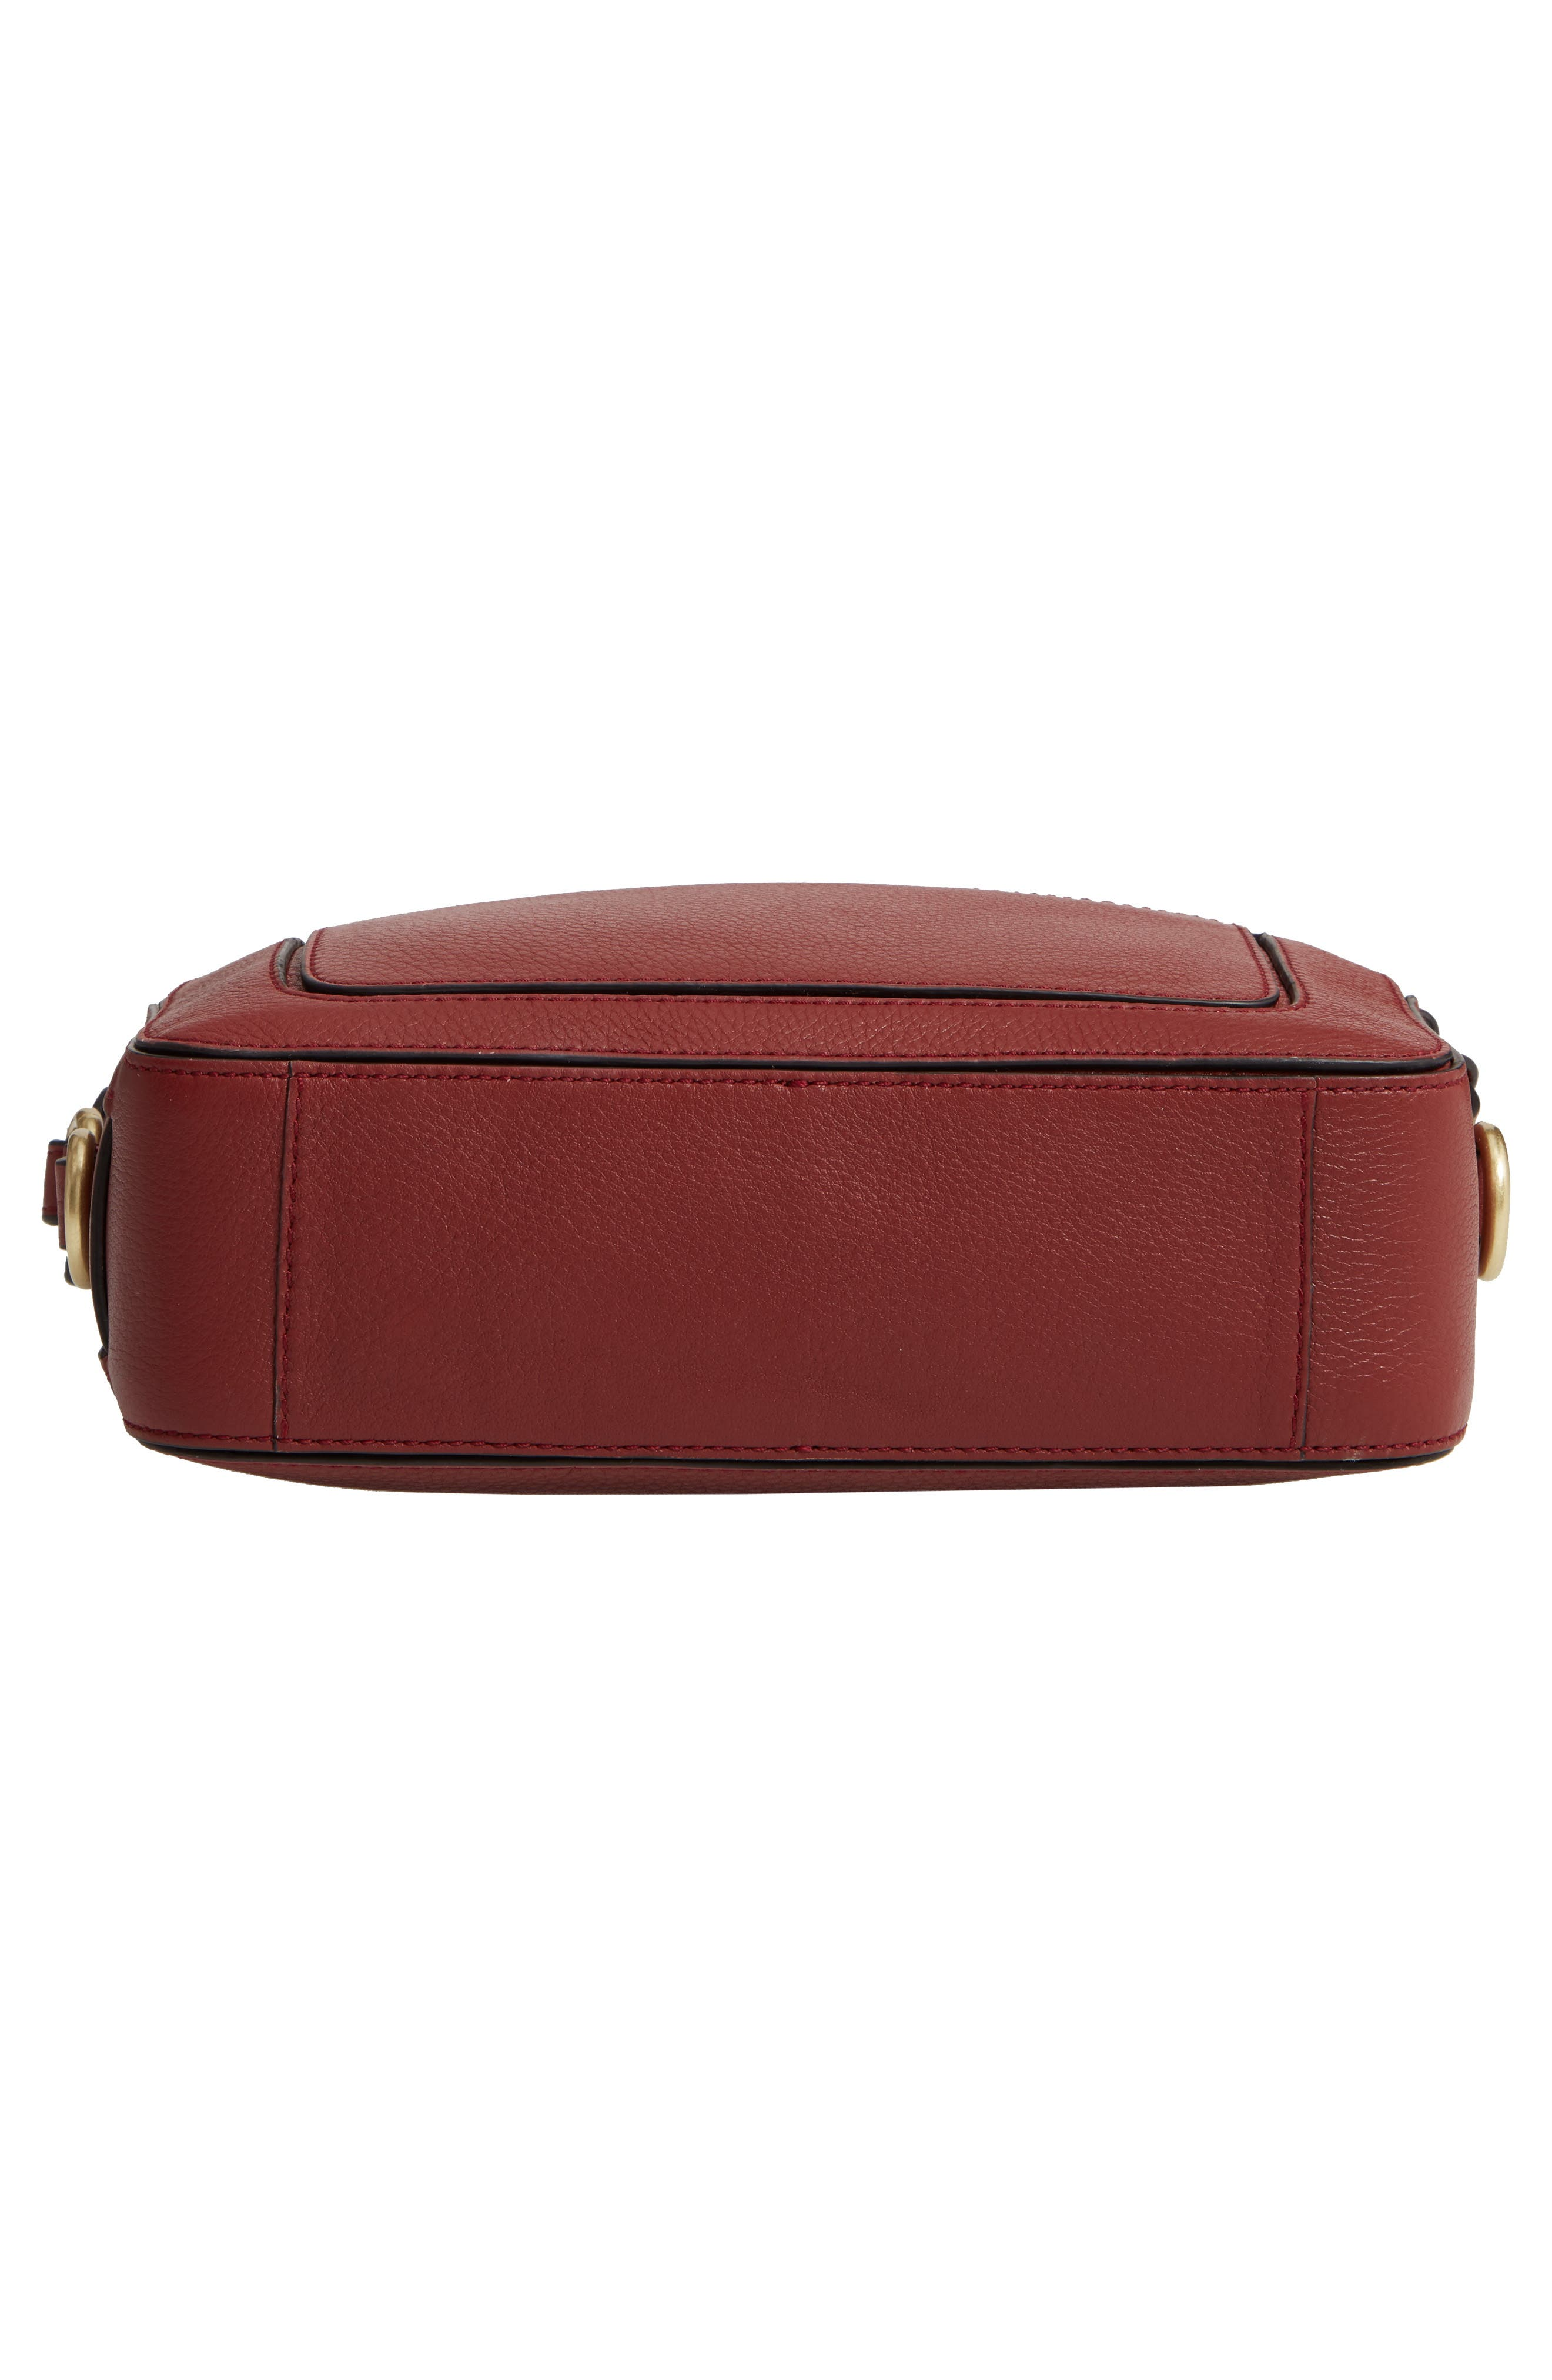 Cassidy RFID Pebbled Leather Camera Bag,                             Alternate thumbnail 22, color,